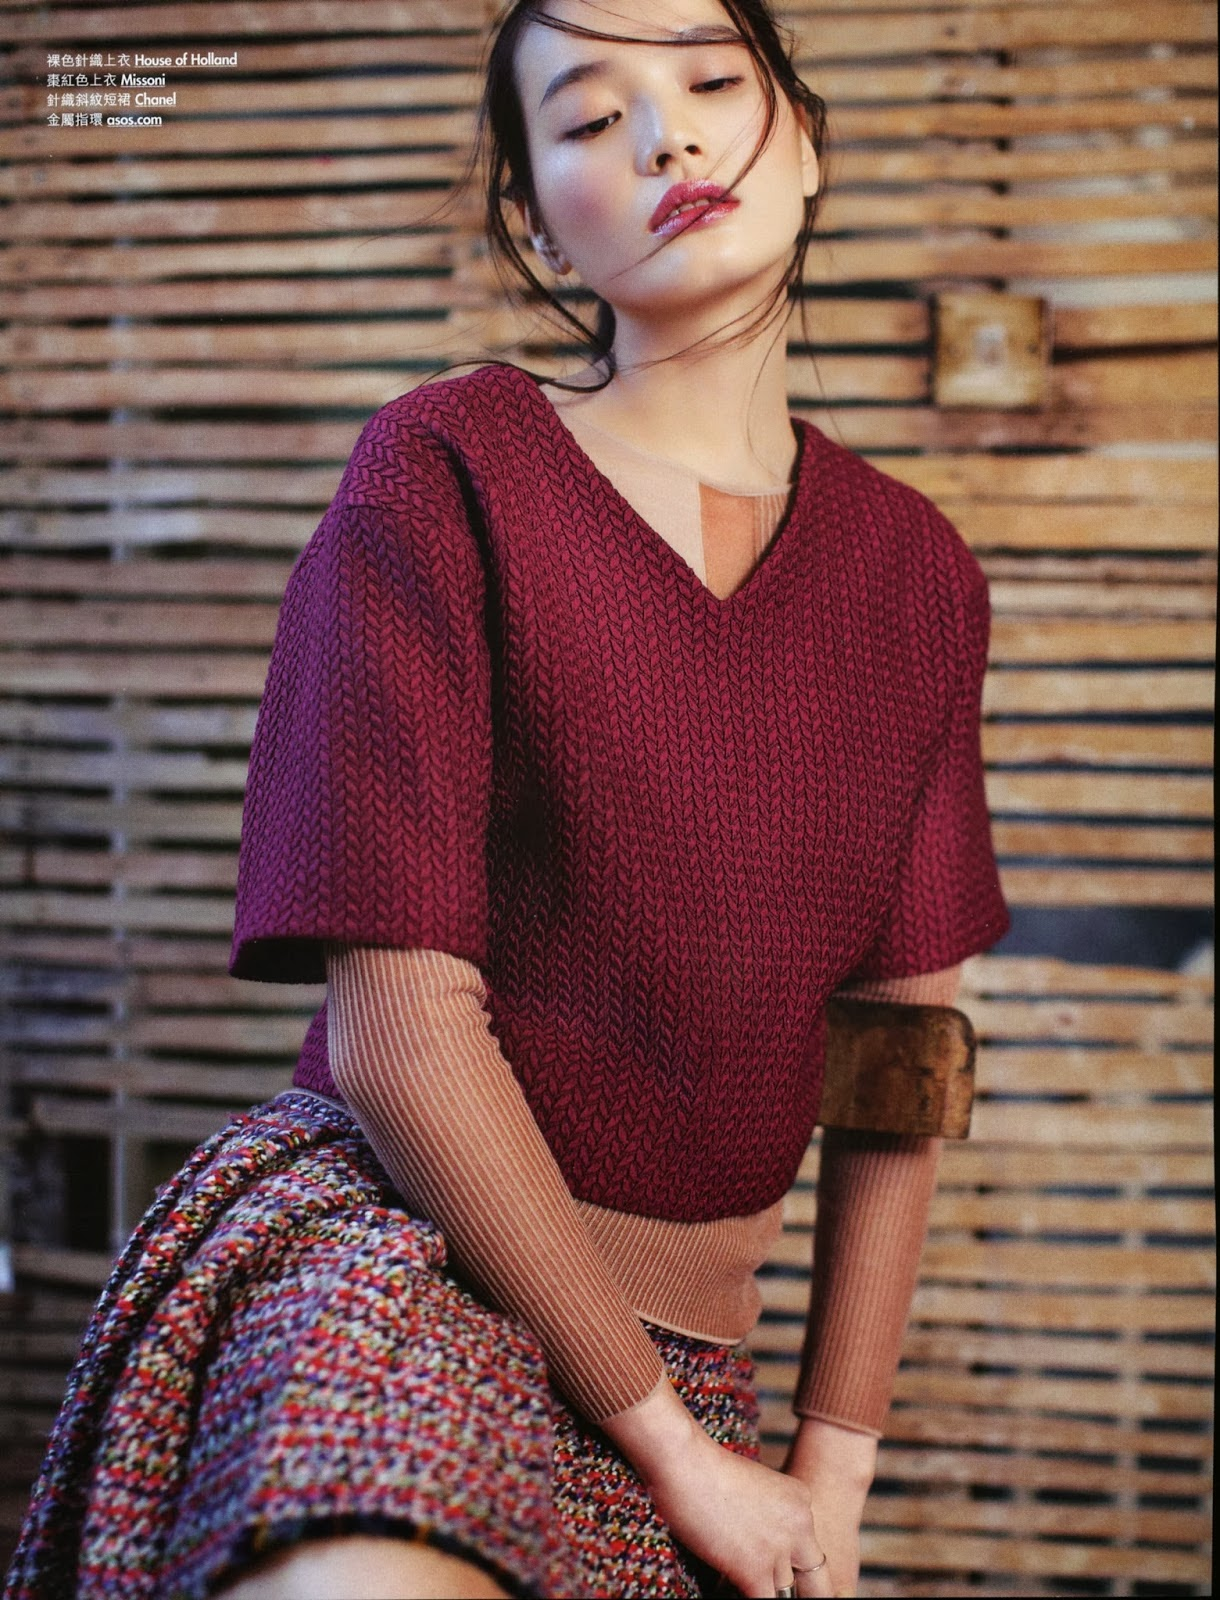 Magazine Photoshoot : Li Wei Photoshot For Elle Magazine Hong Kong February 2014 Issue